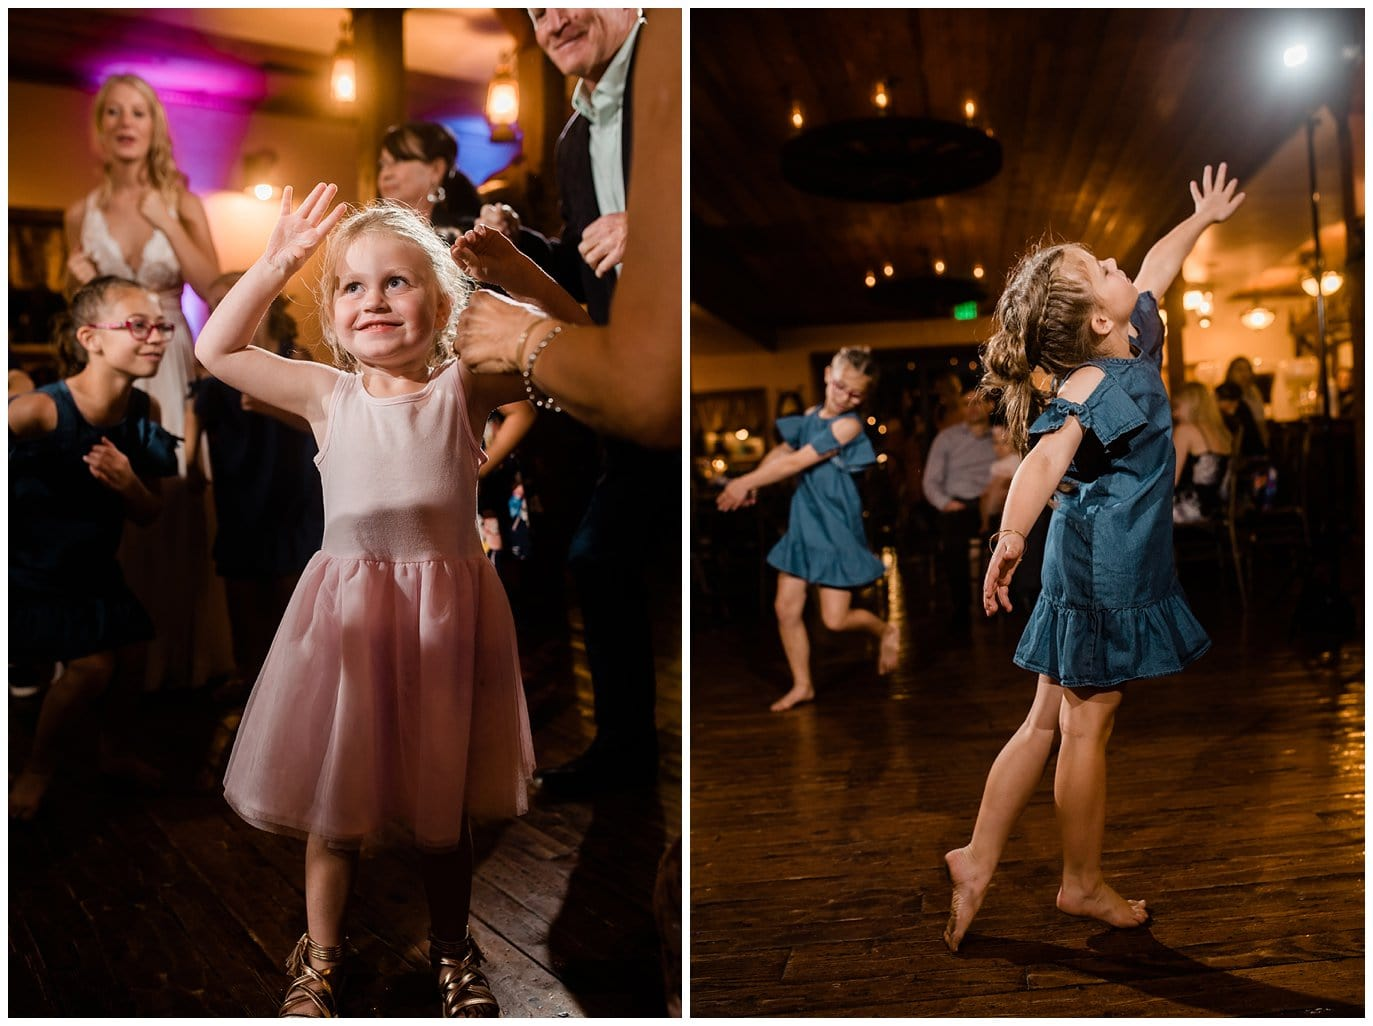 reception dancing in barn at Deer Creek Valley Ranch wedding by Colorado Wedding Photographer Jennie Crate Photographer